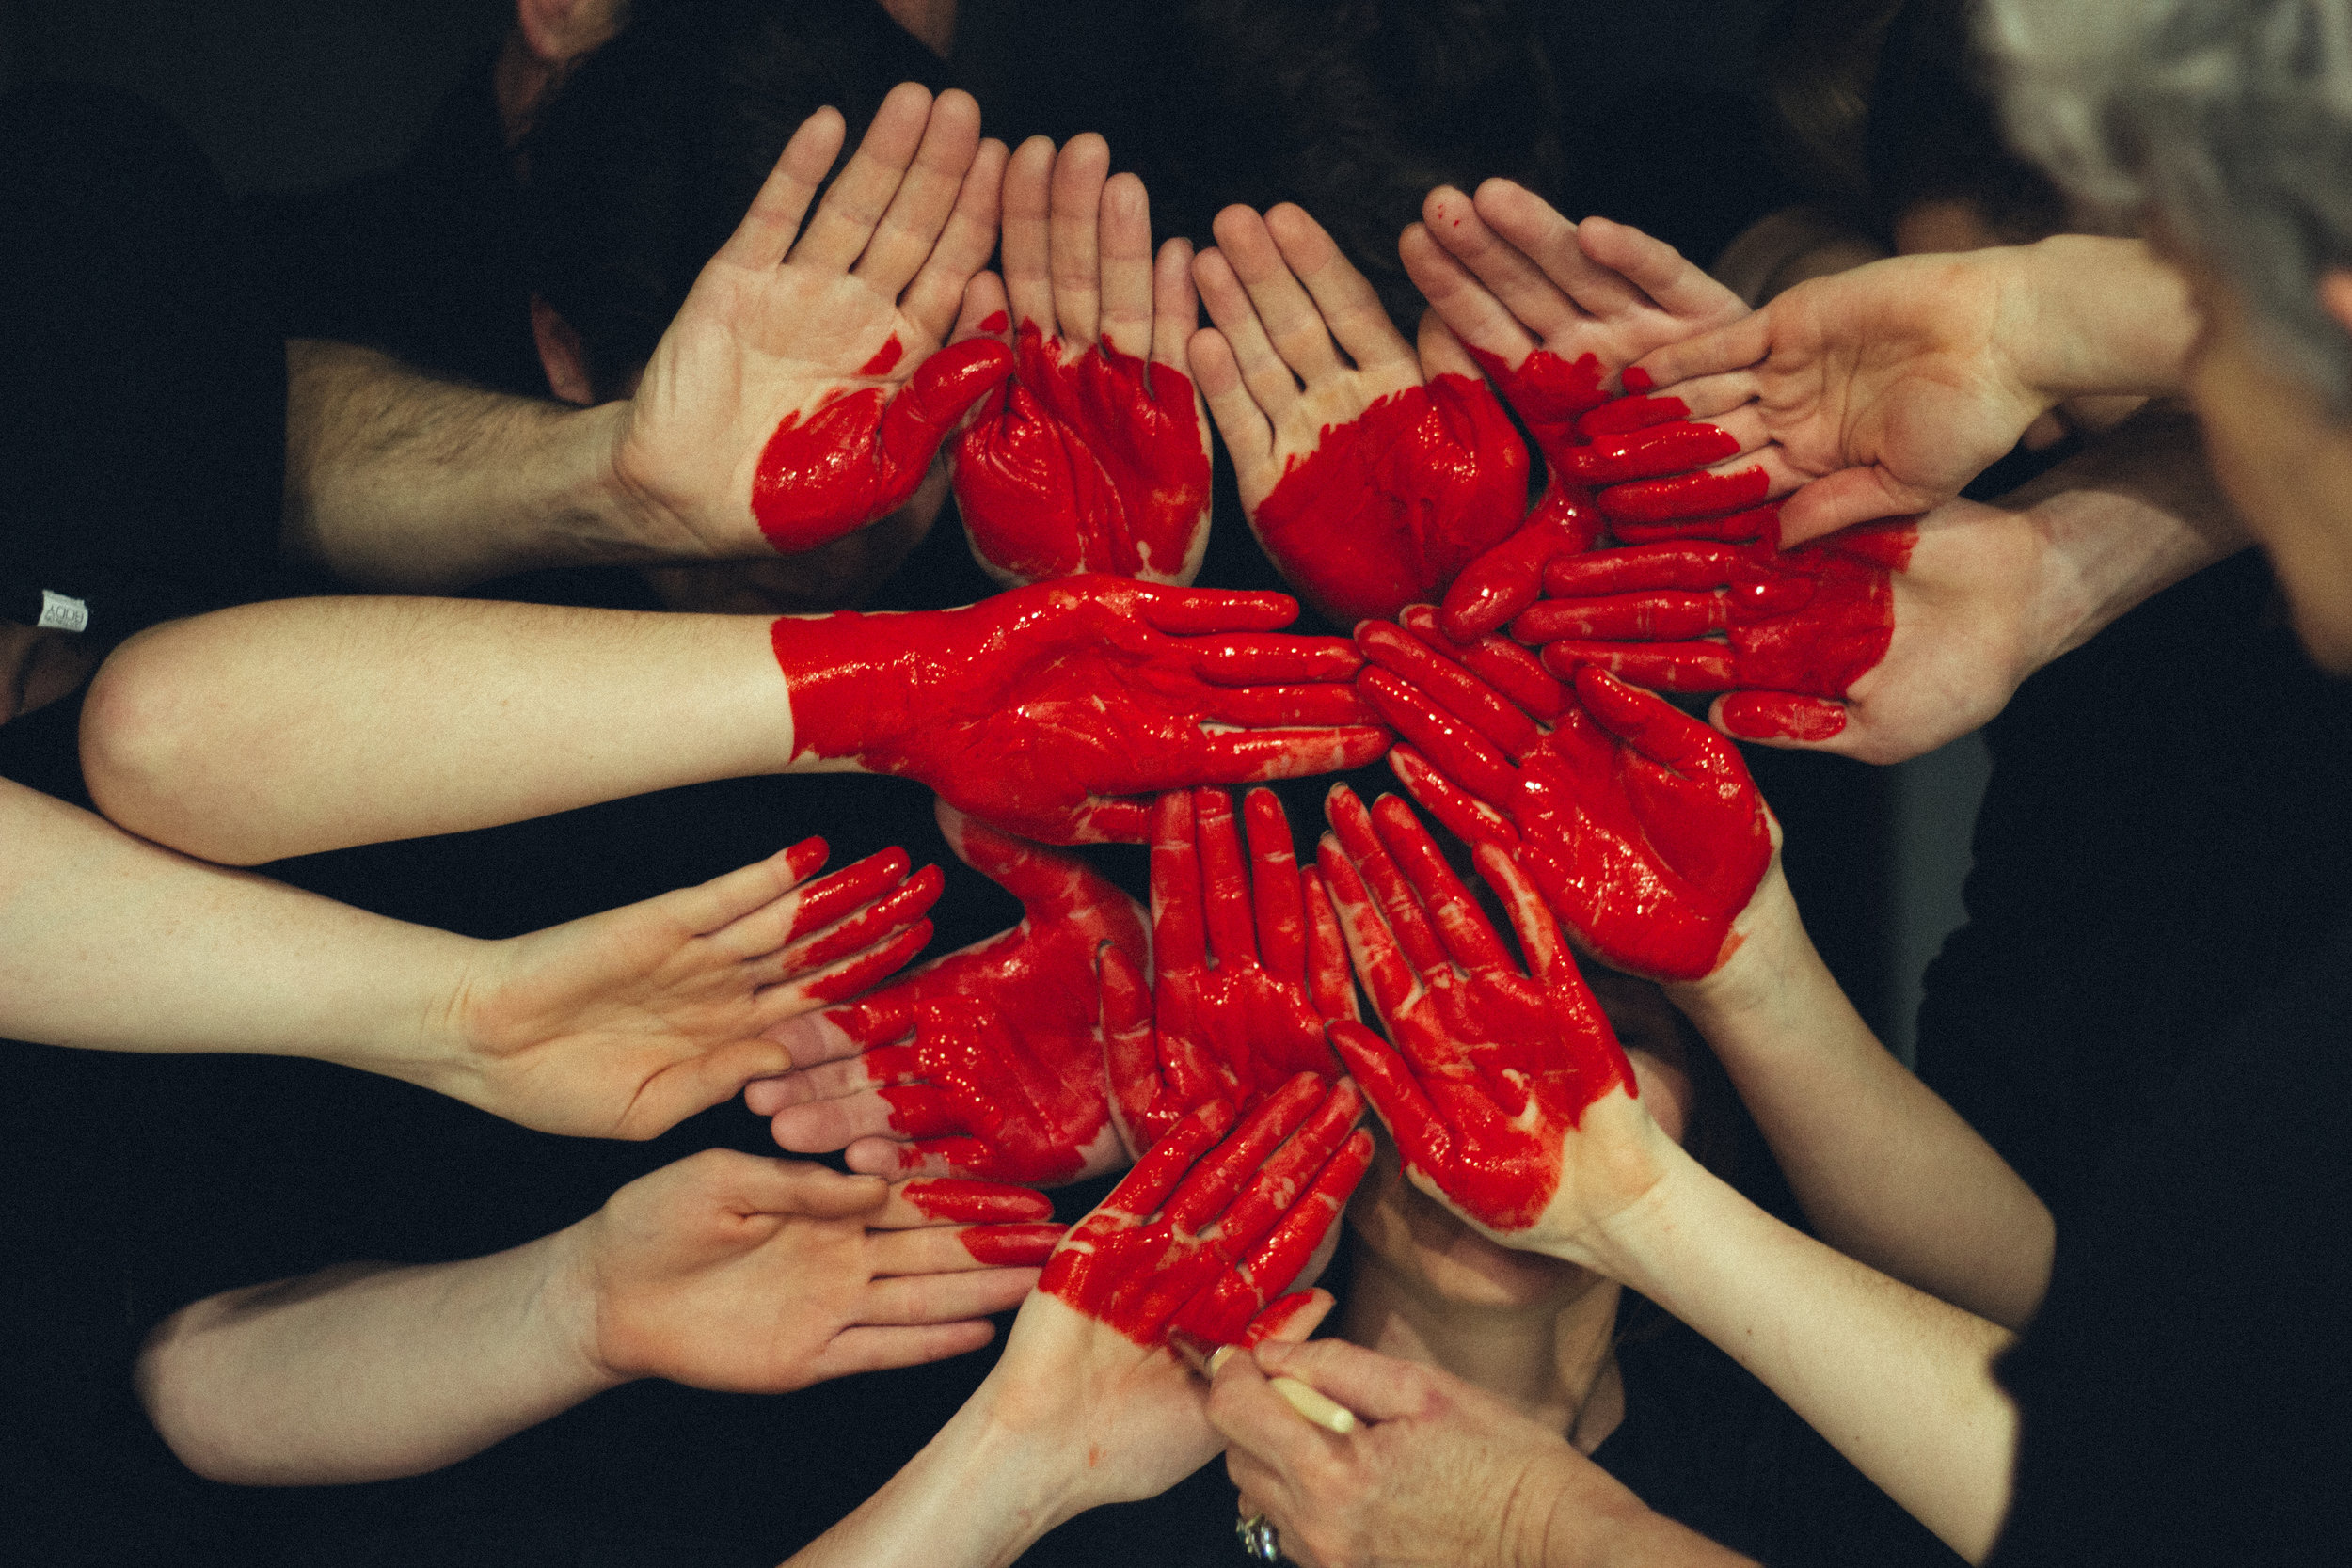 Hands grouped together with red paint to form a heart. Photo by Unsplash